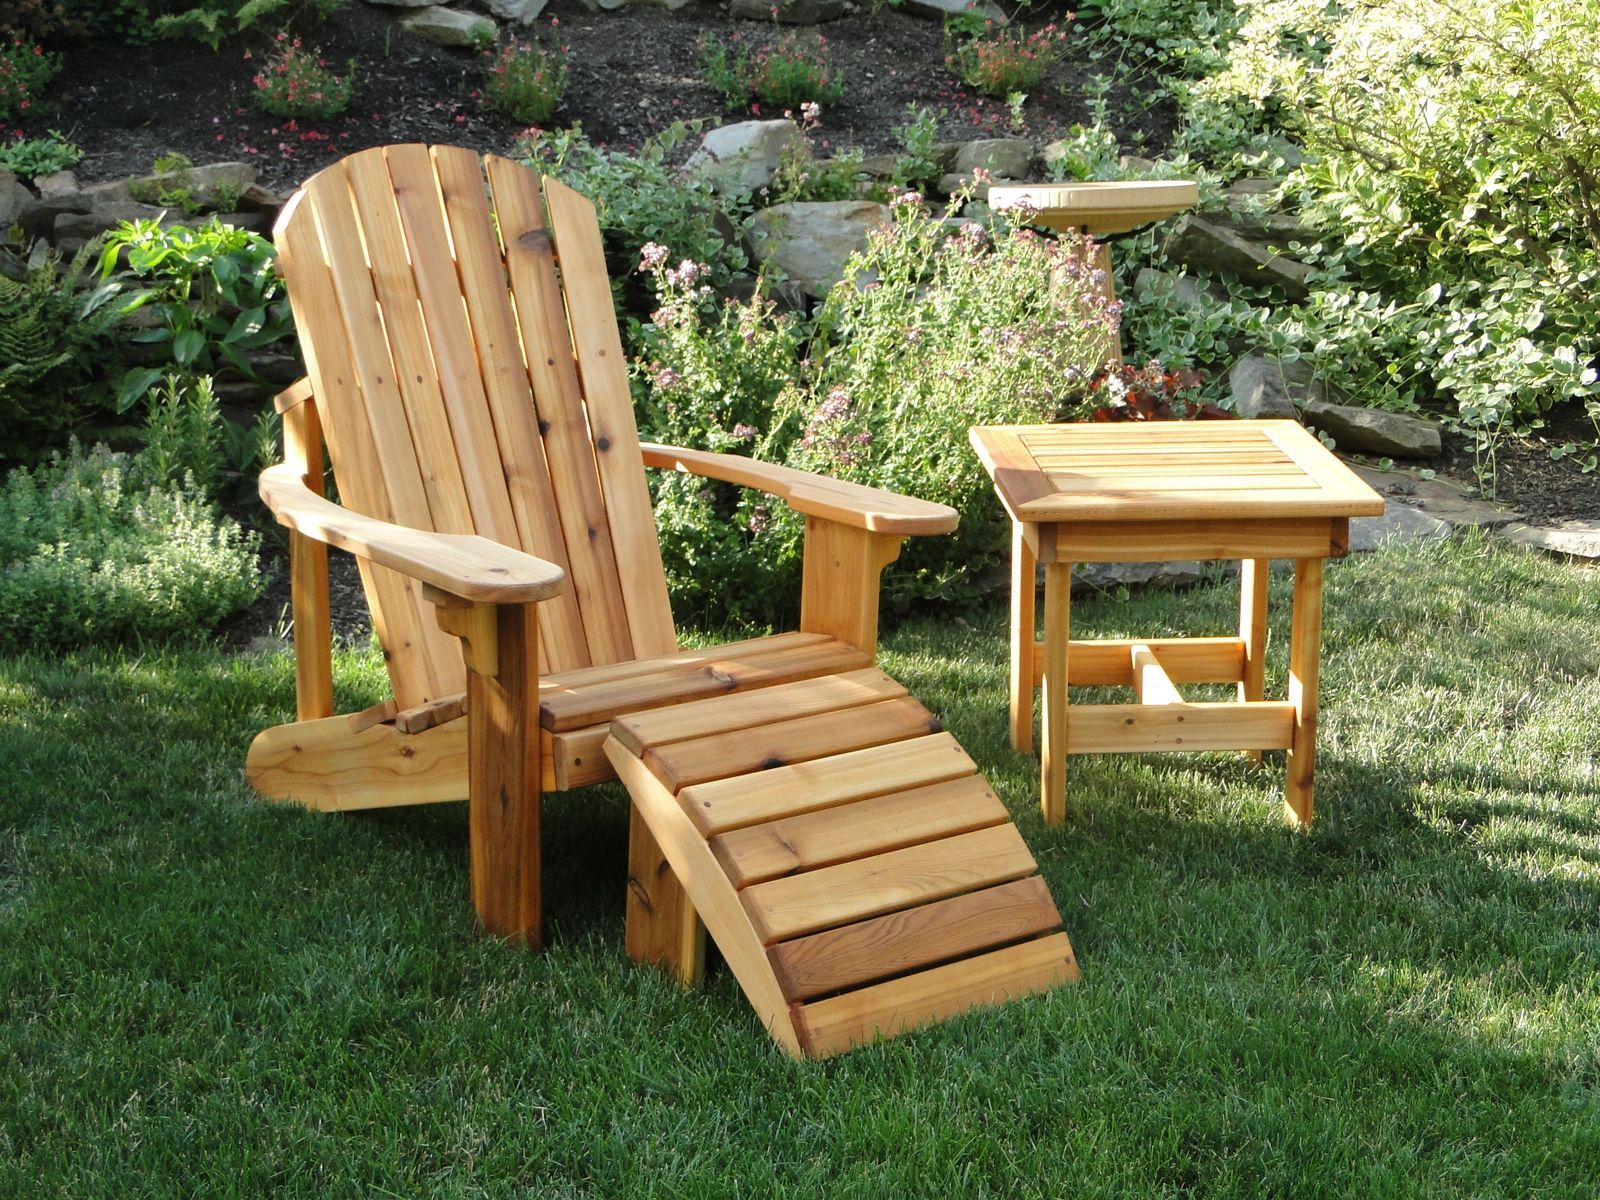 simple wooden chair plans. These Simple And Functional Adirondack Chairs Plans Are Affordable, Colorful Especially Easy To Build With Detailed Ideas Video From Lowe\u0027s. Wooden Chair N